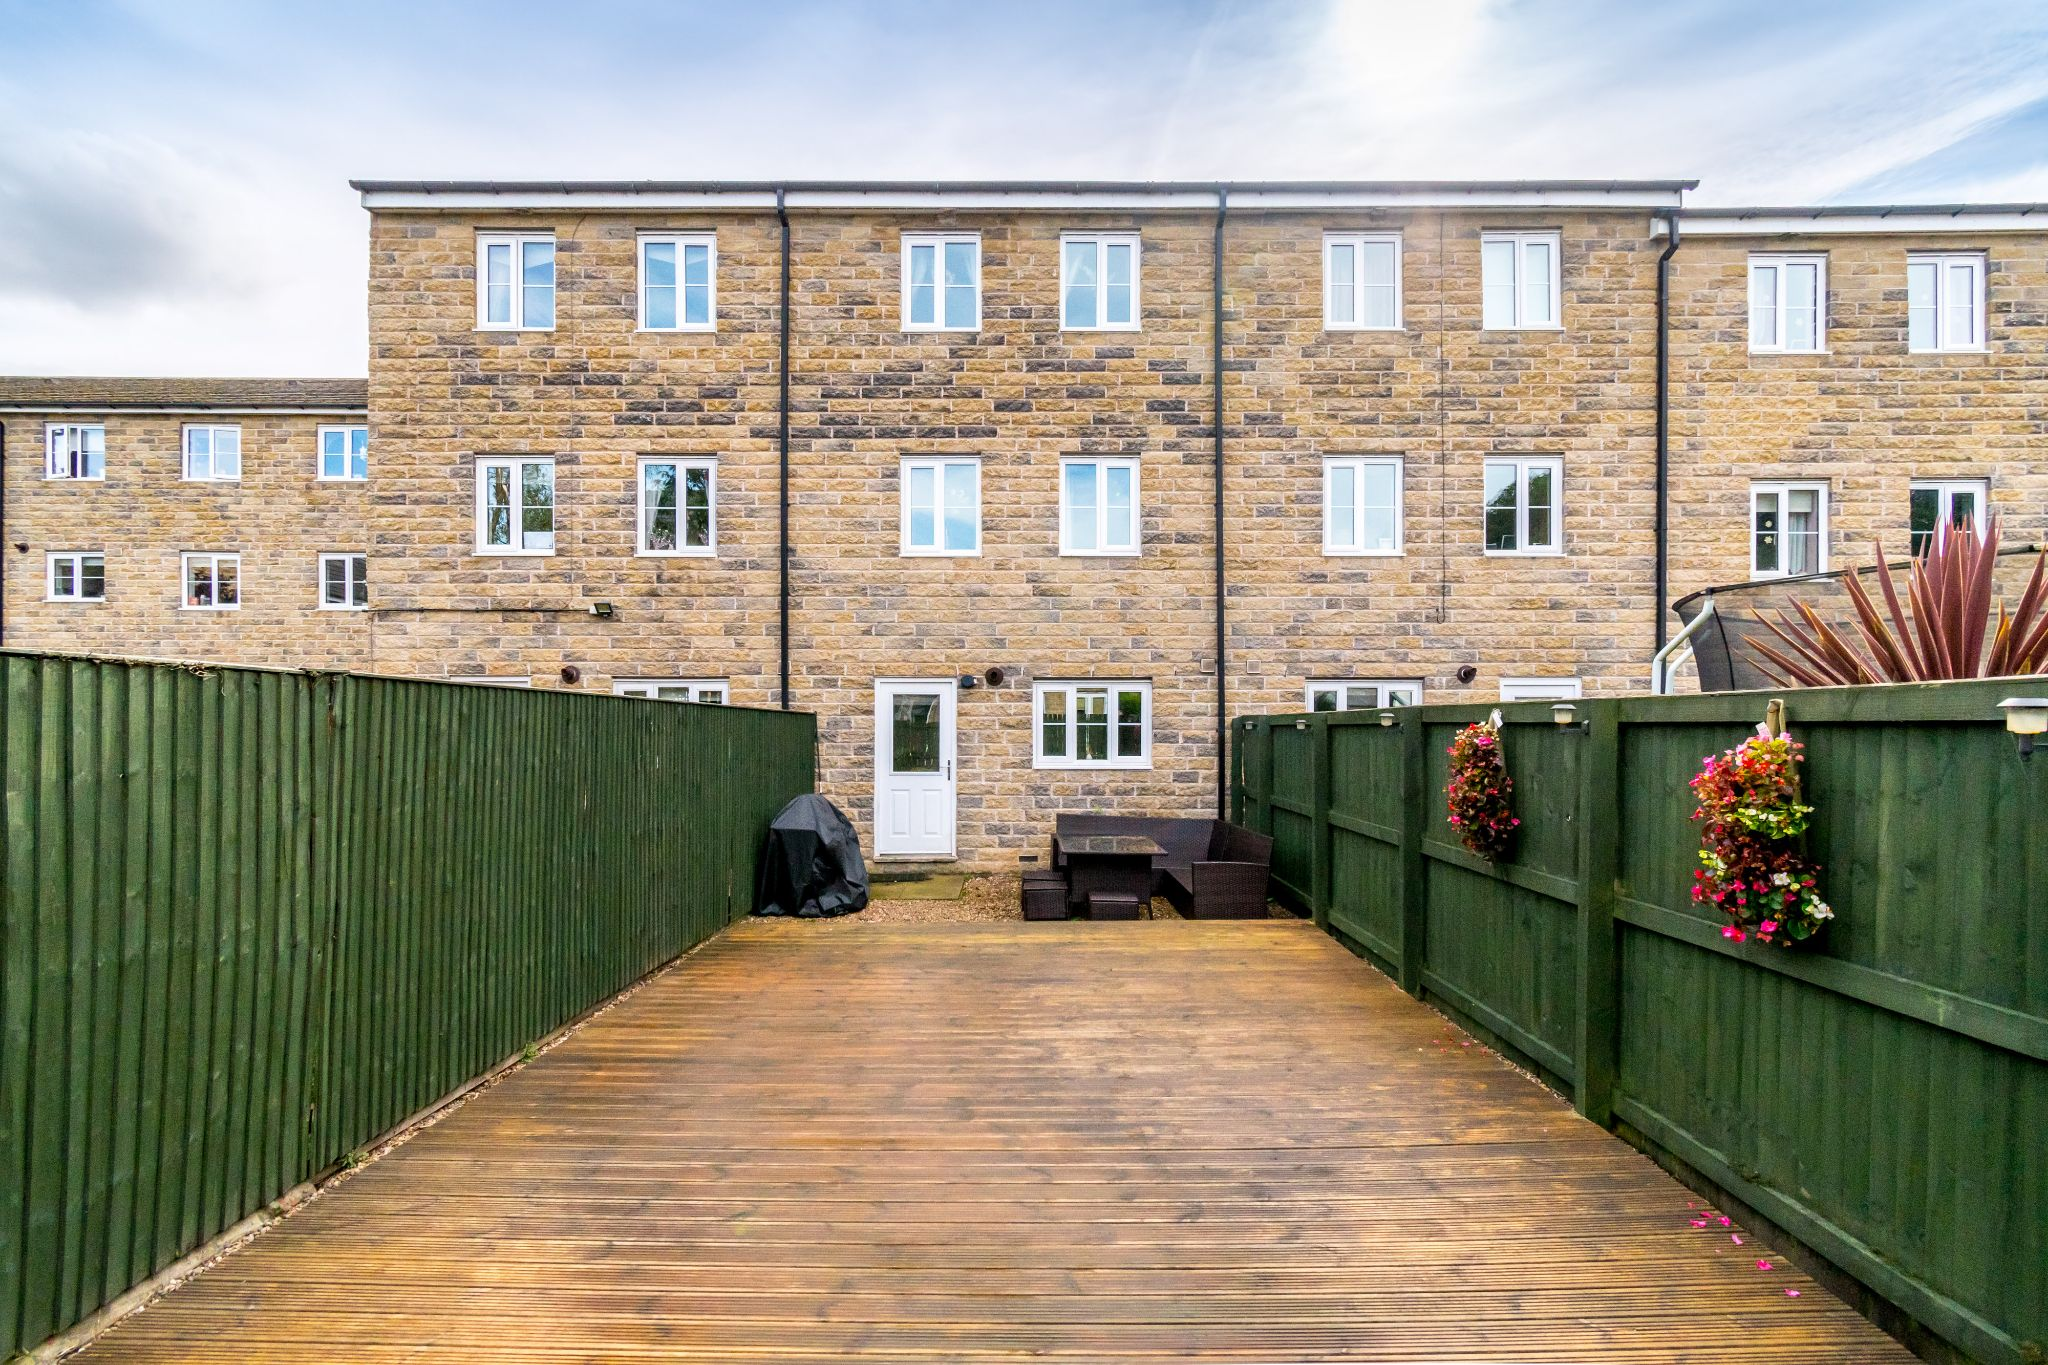 4 bedroom mid terraced house SSTC in Brighouse - Photograph 23